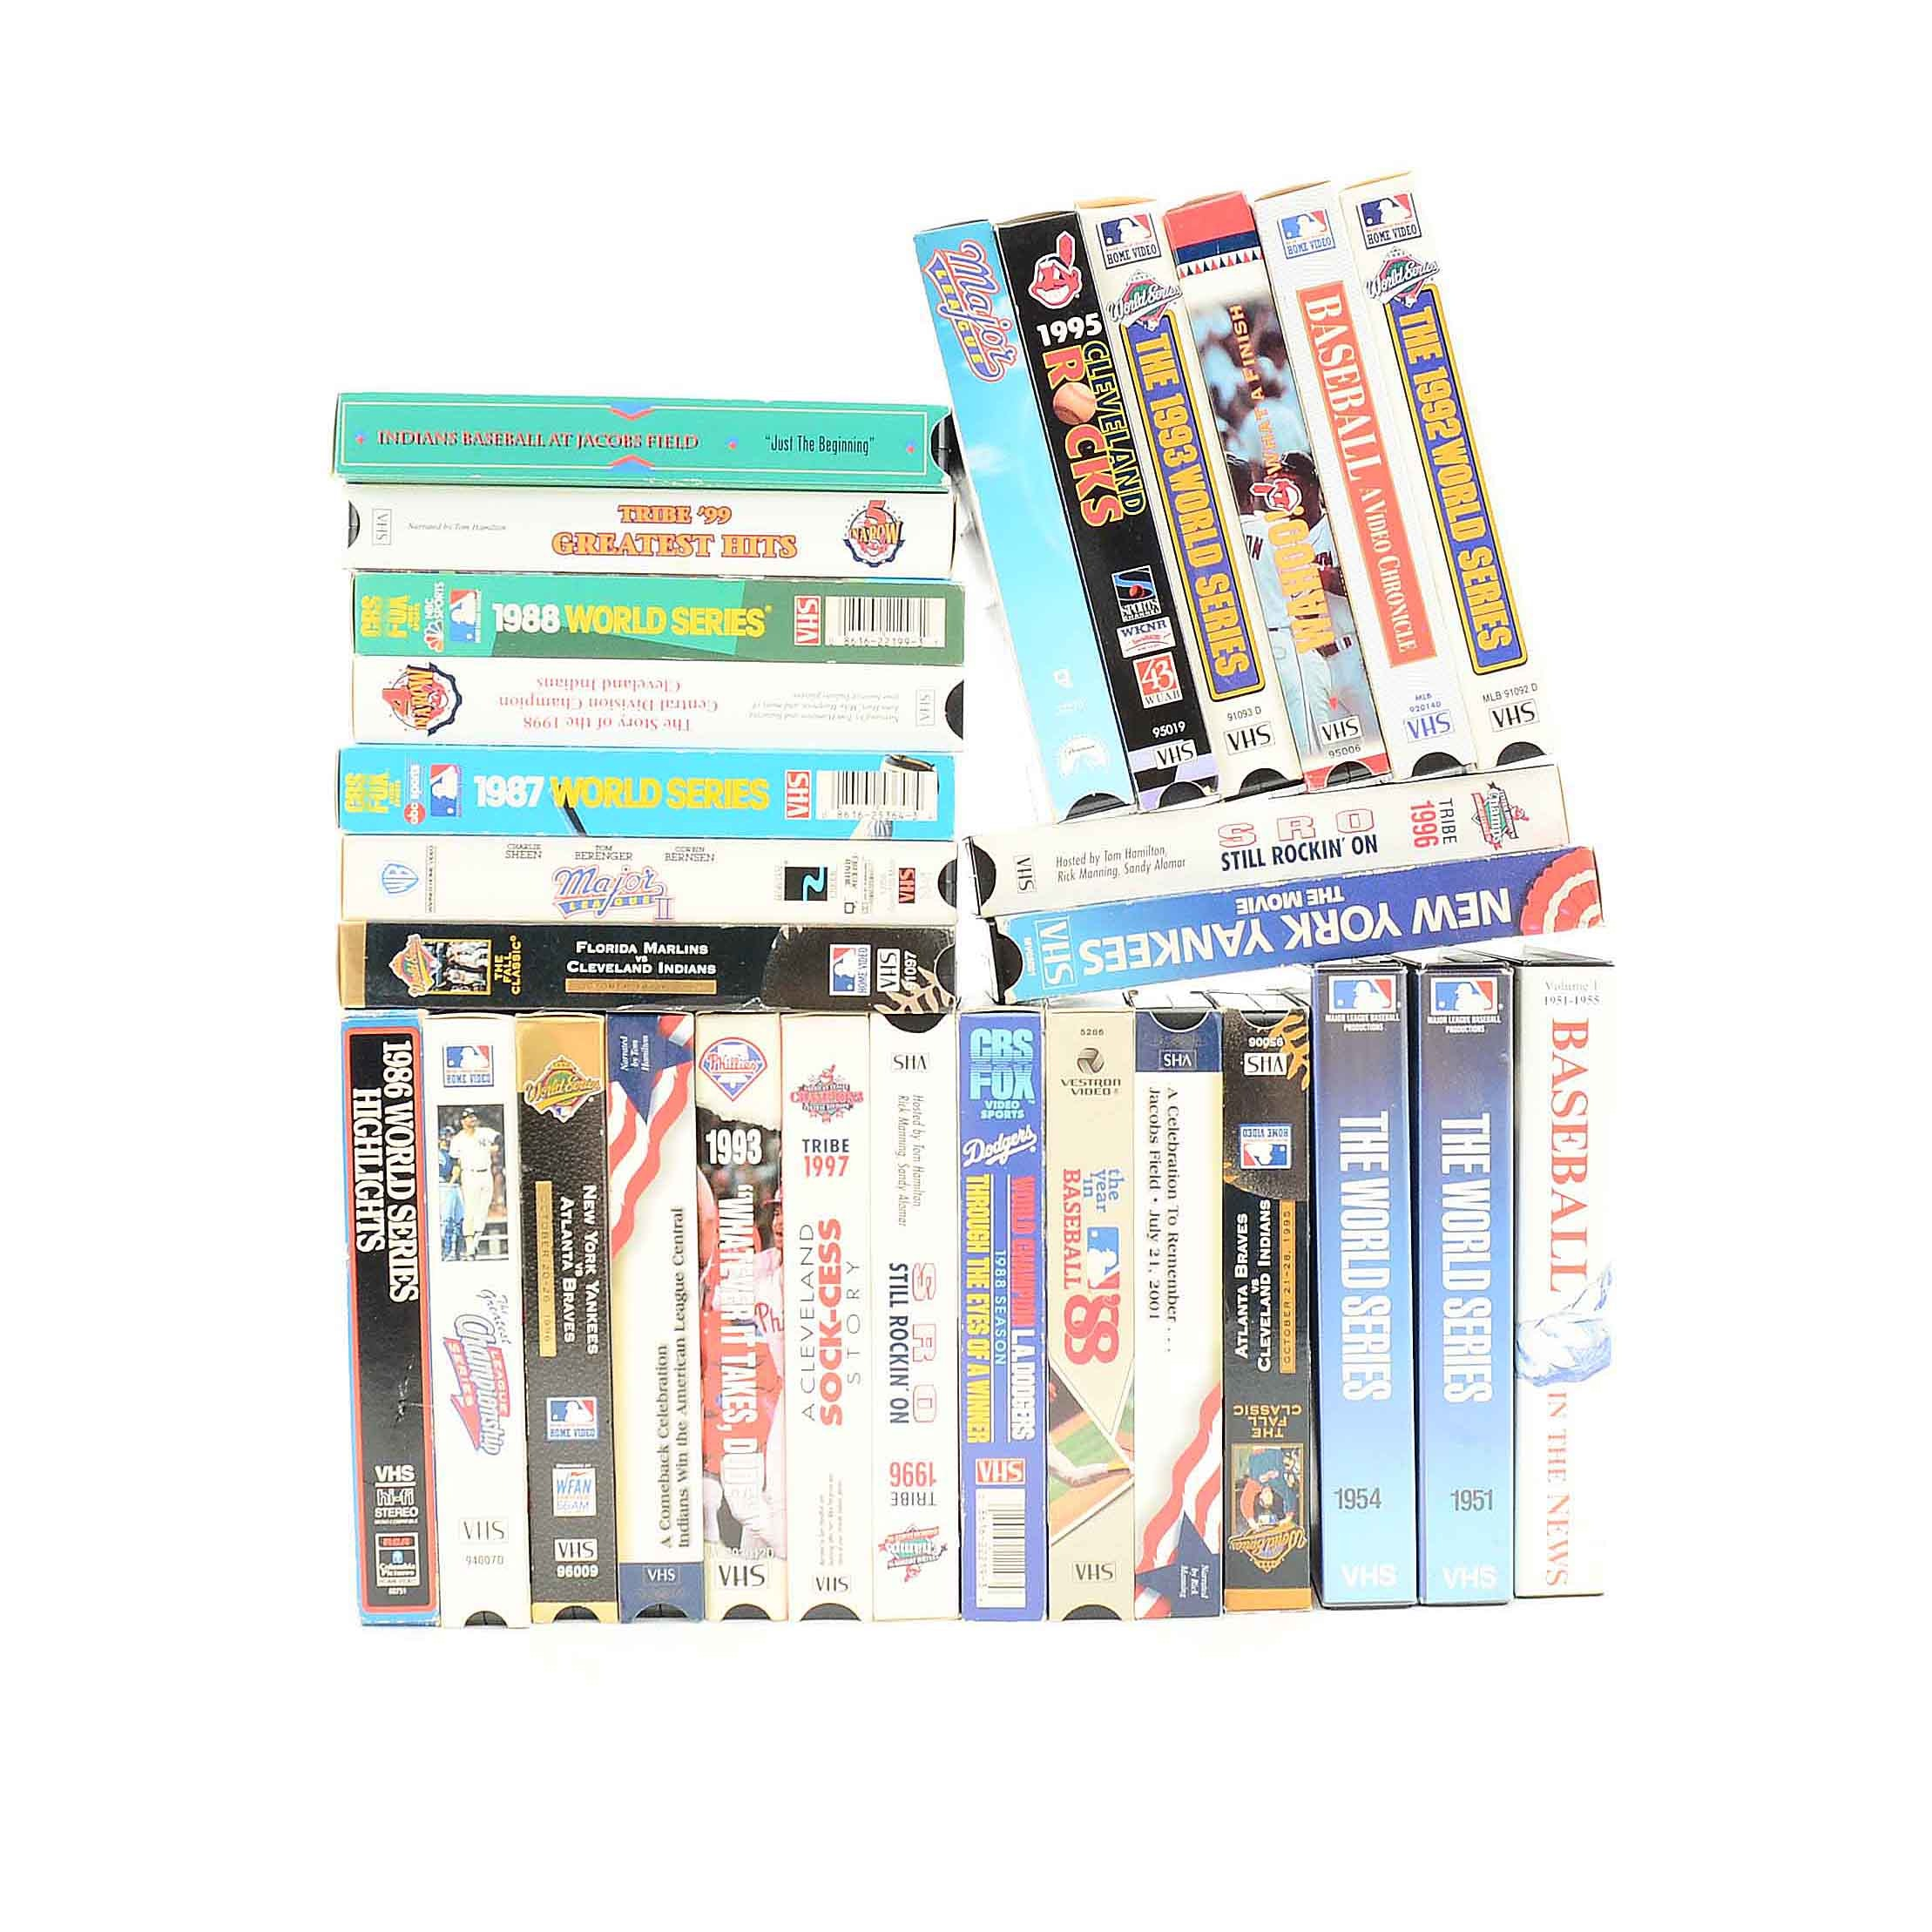 1980s and 1990s Baseball VHS Tapes